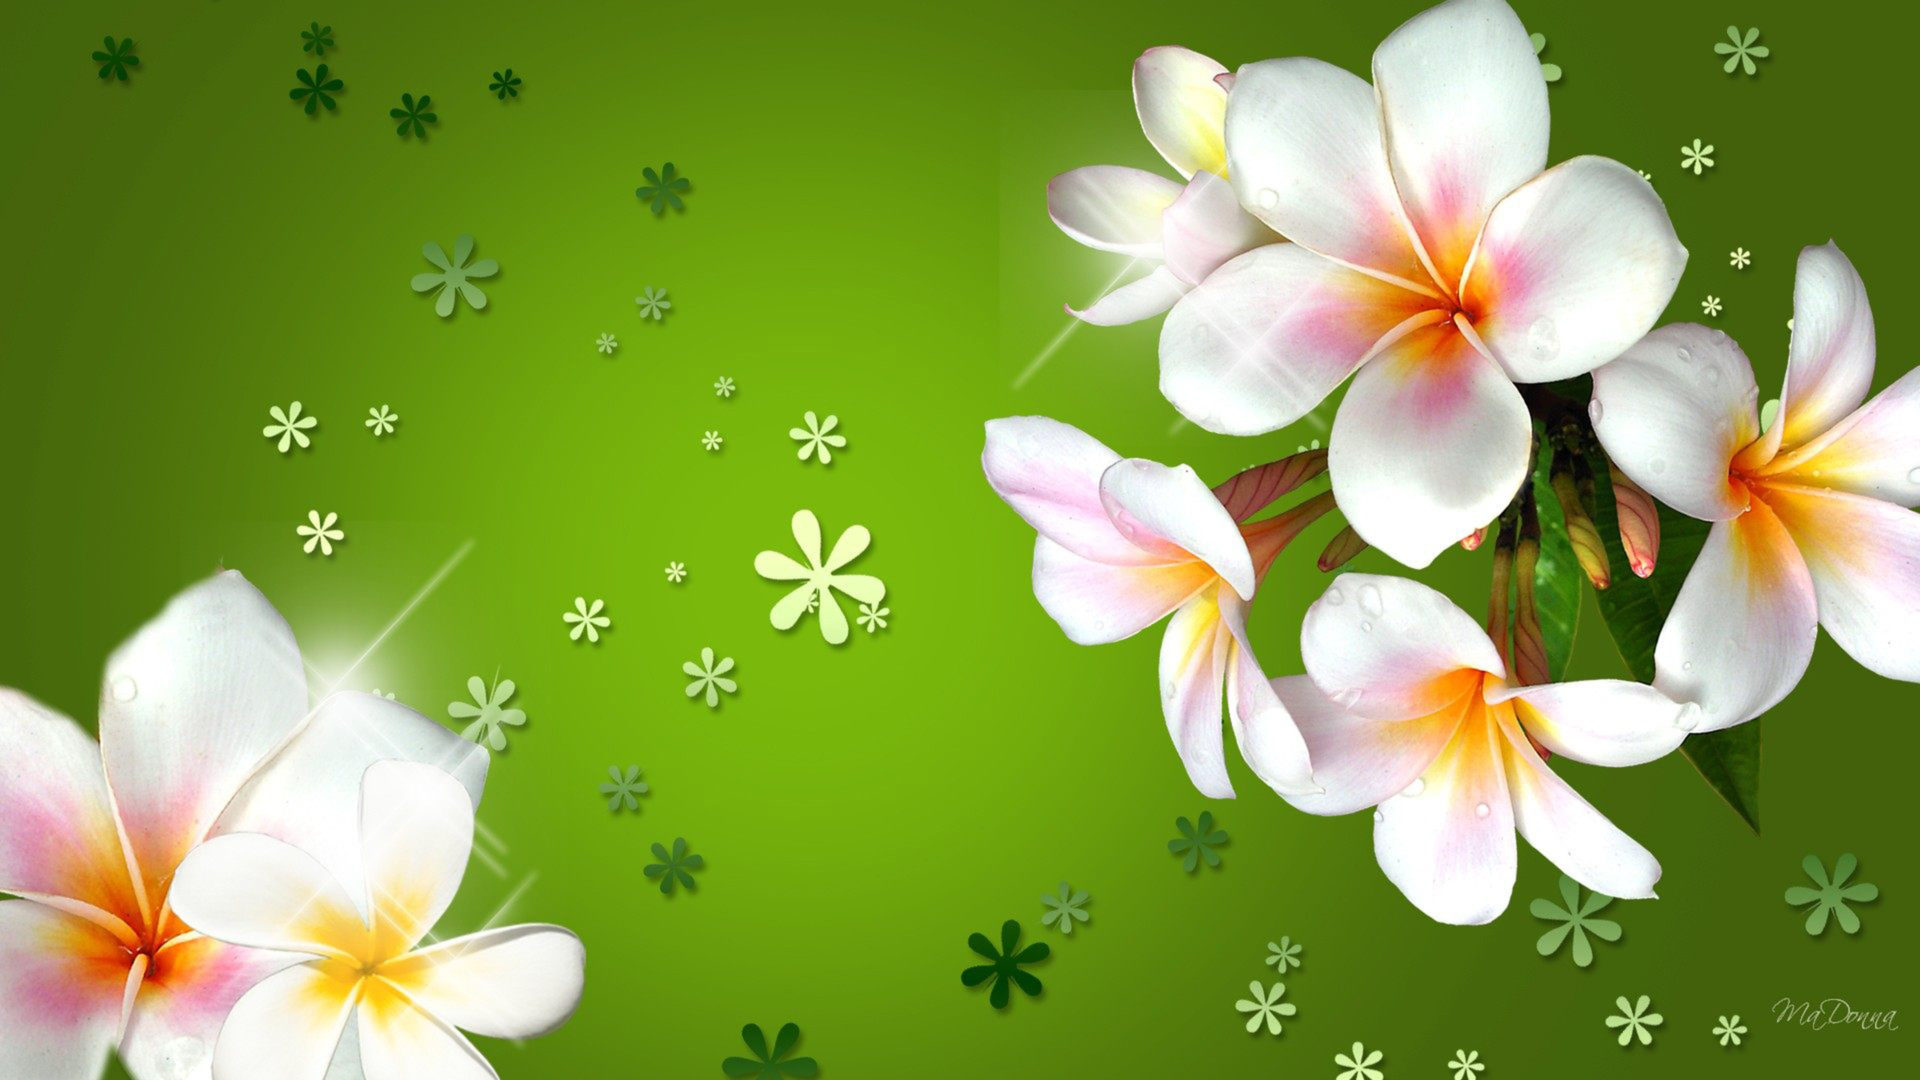 3d Sunflower Wallpaper Plumeria Three Colored Flowers With Bright Green